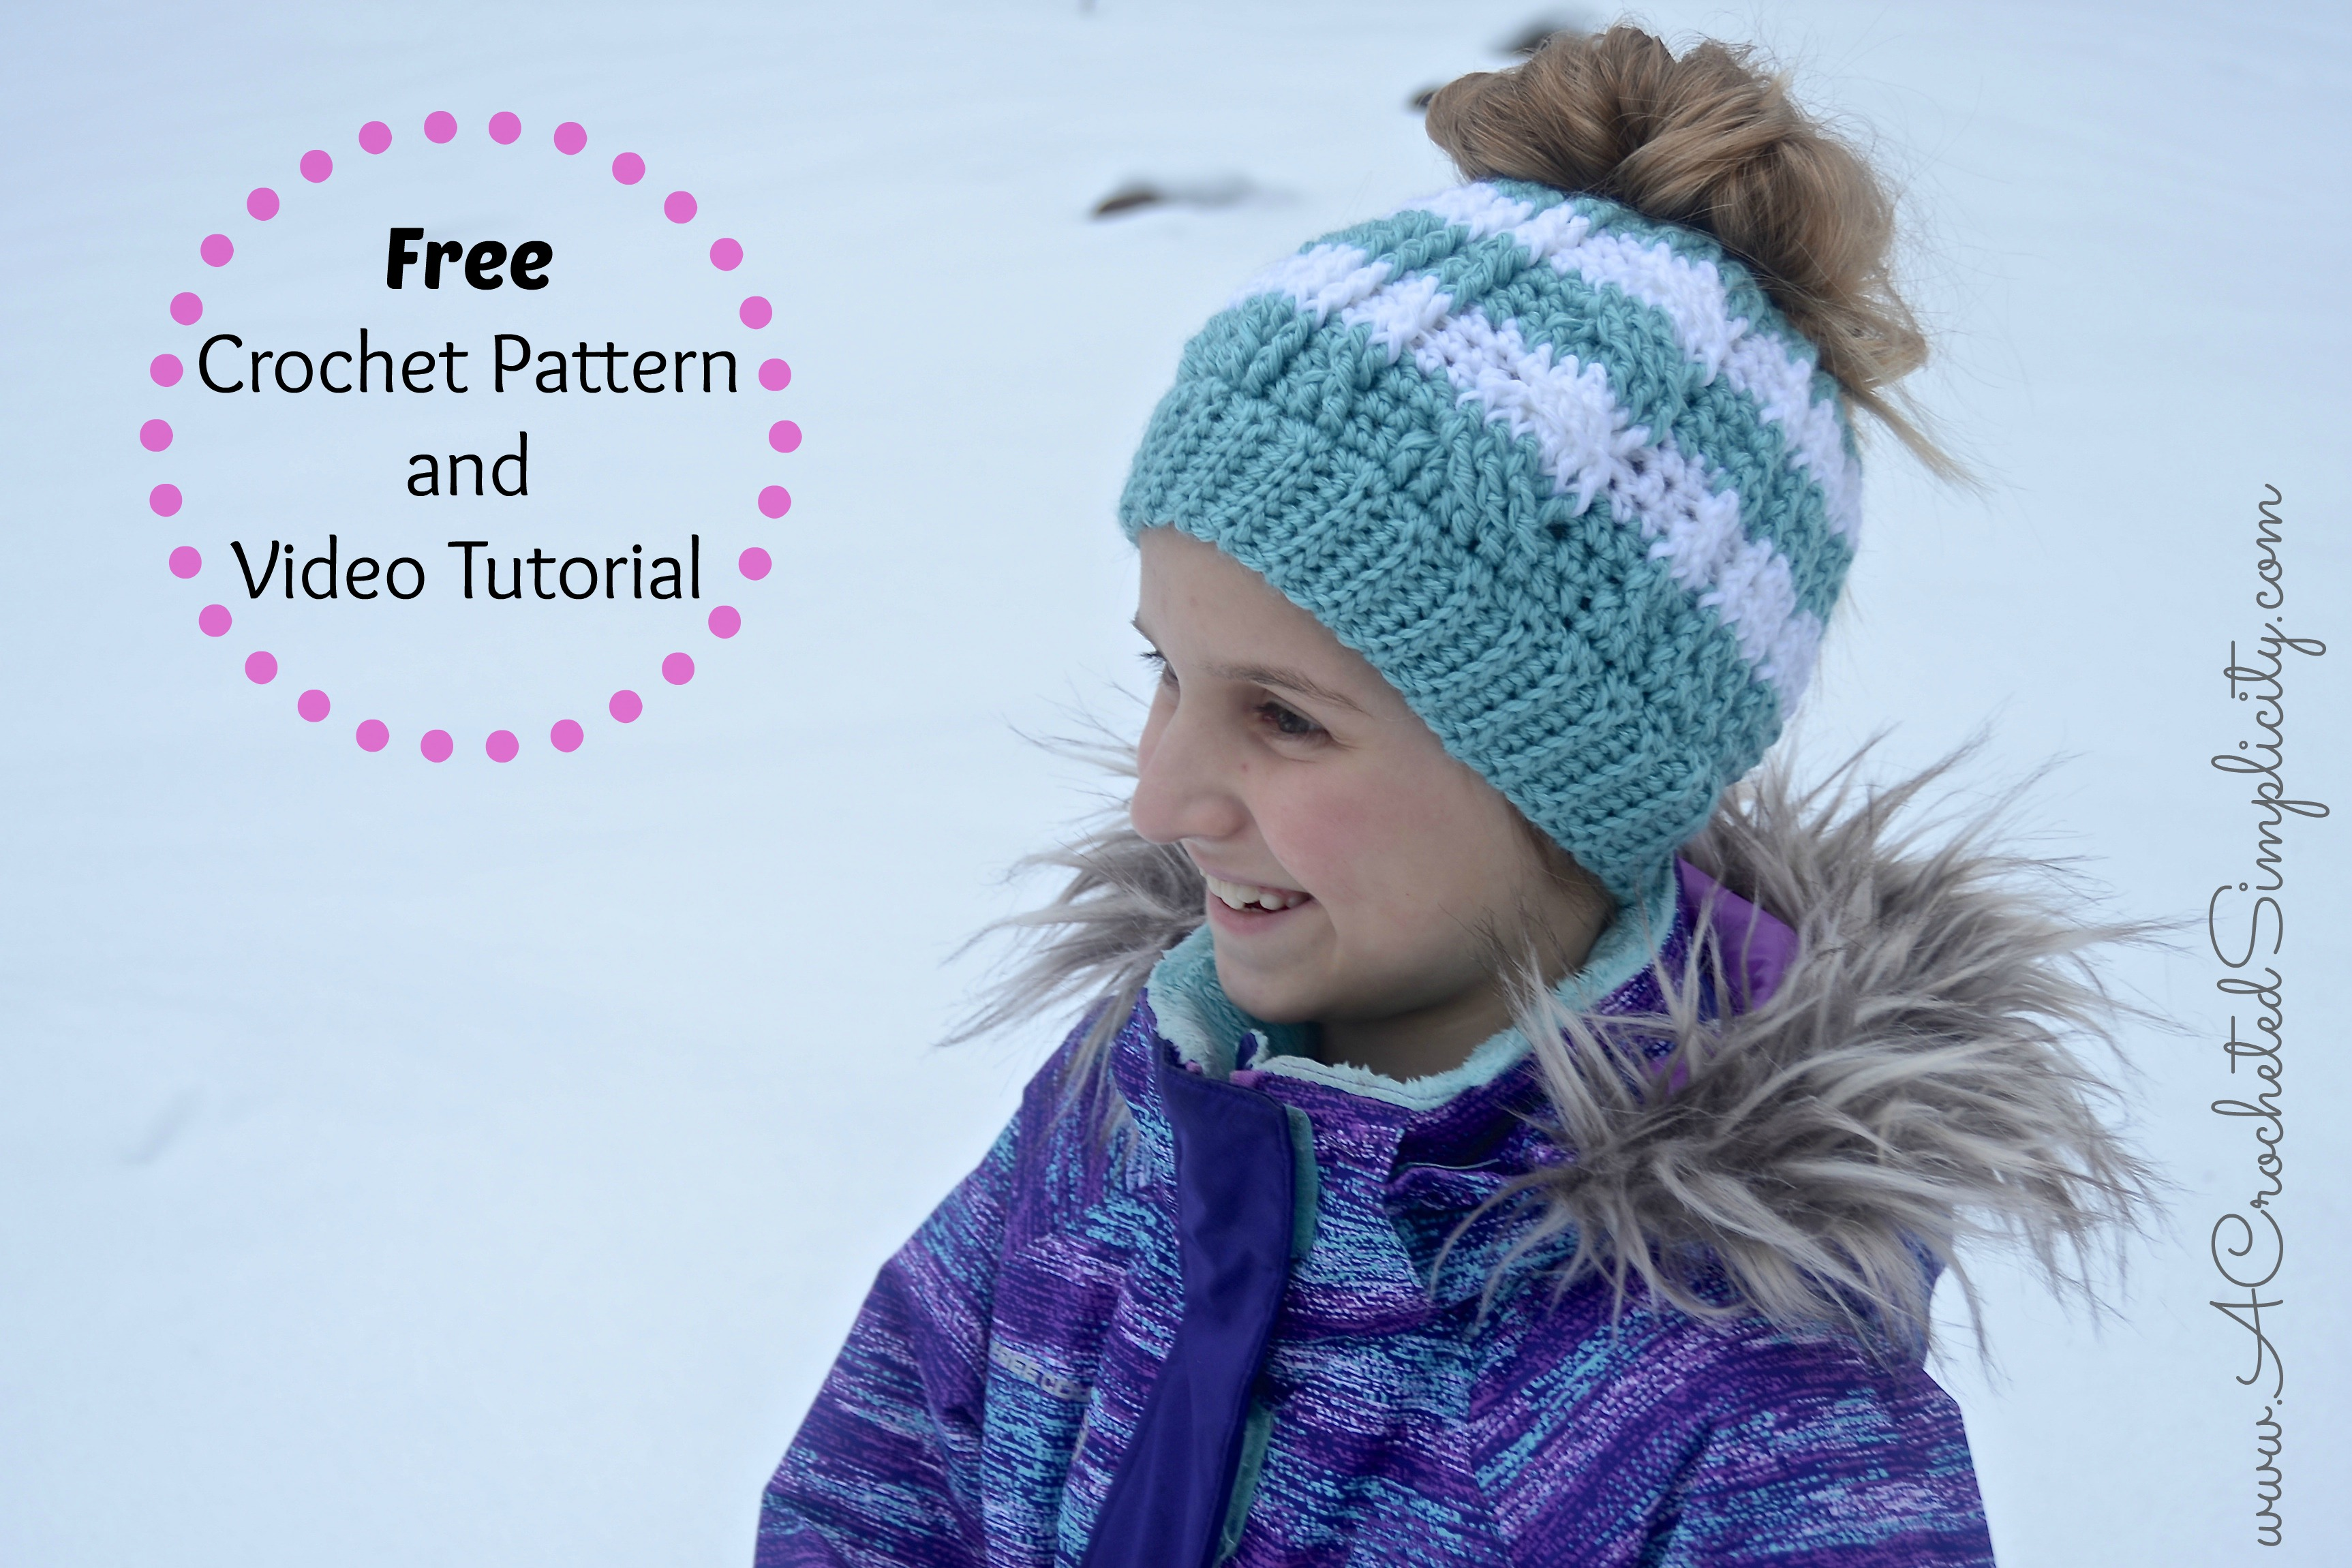 Free crochet pattern crochet cabled messy bun kids sizes free crochet pattern crochet cabled messy bun kids sizes video tutorial included a crocheted simplicity bankloansurffo Images